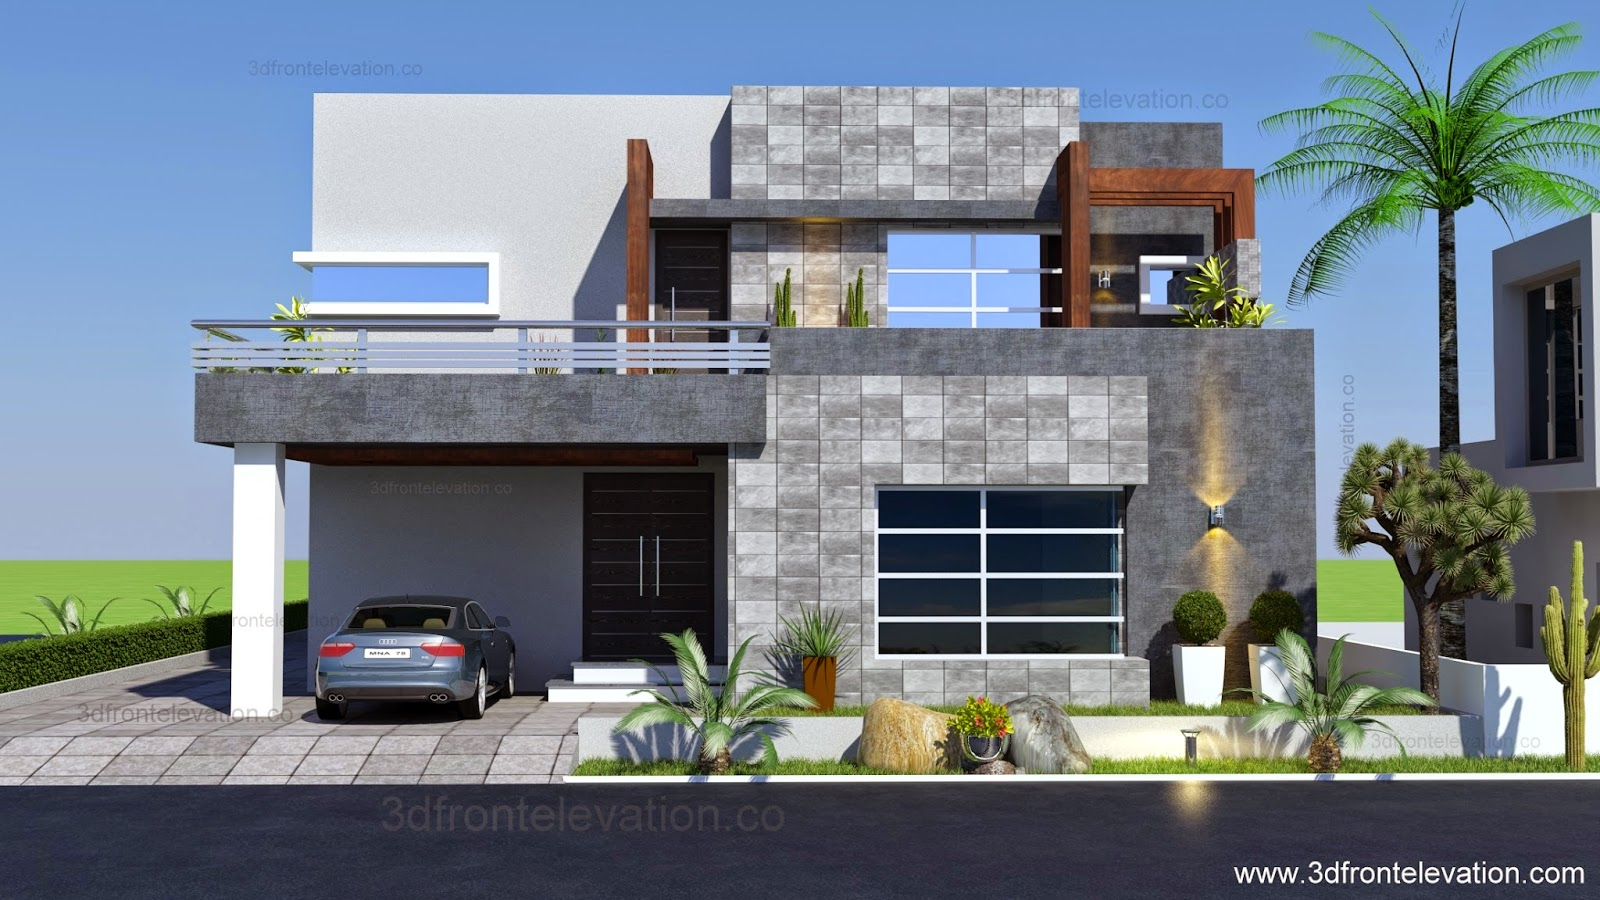 Contemporary House Elevation Single Floor: 3D Front Elevation.com: 1 Kanal Contemporary House Plan